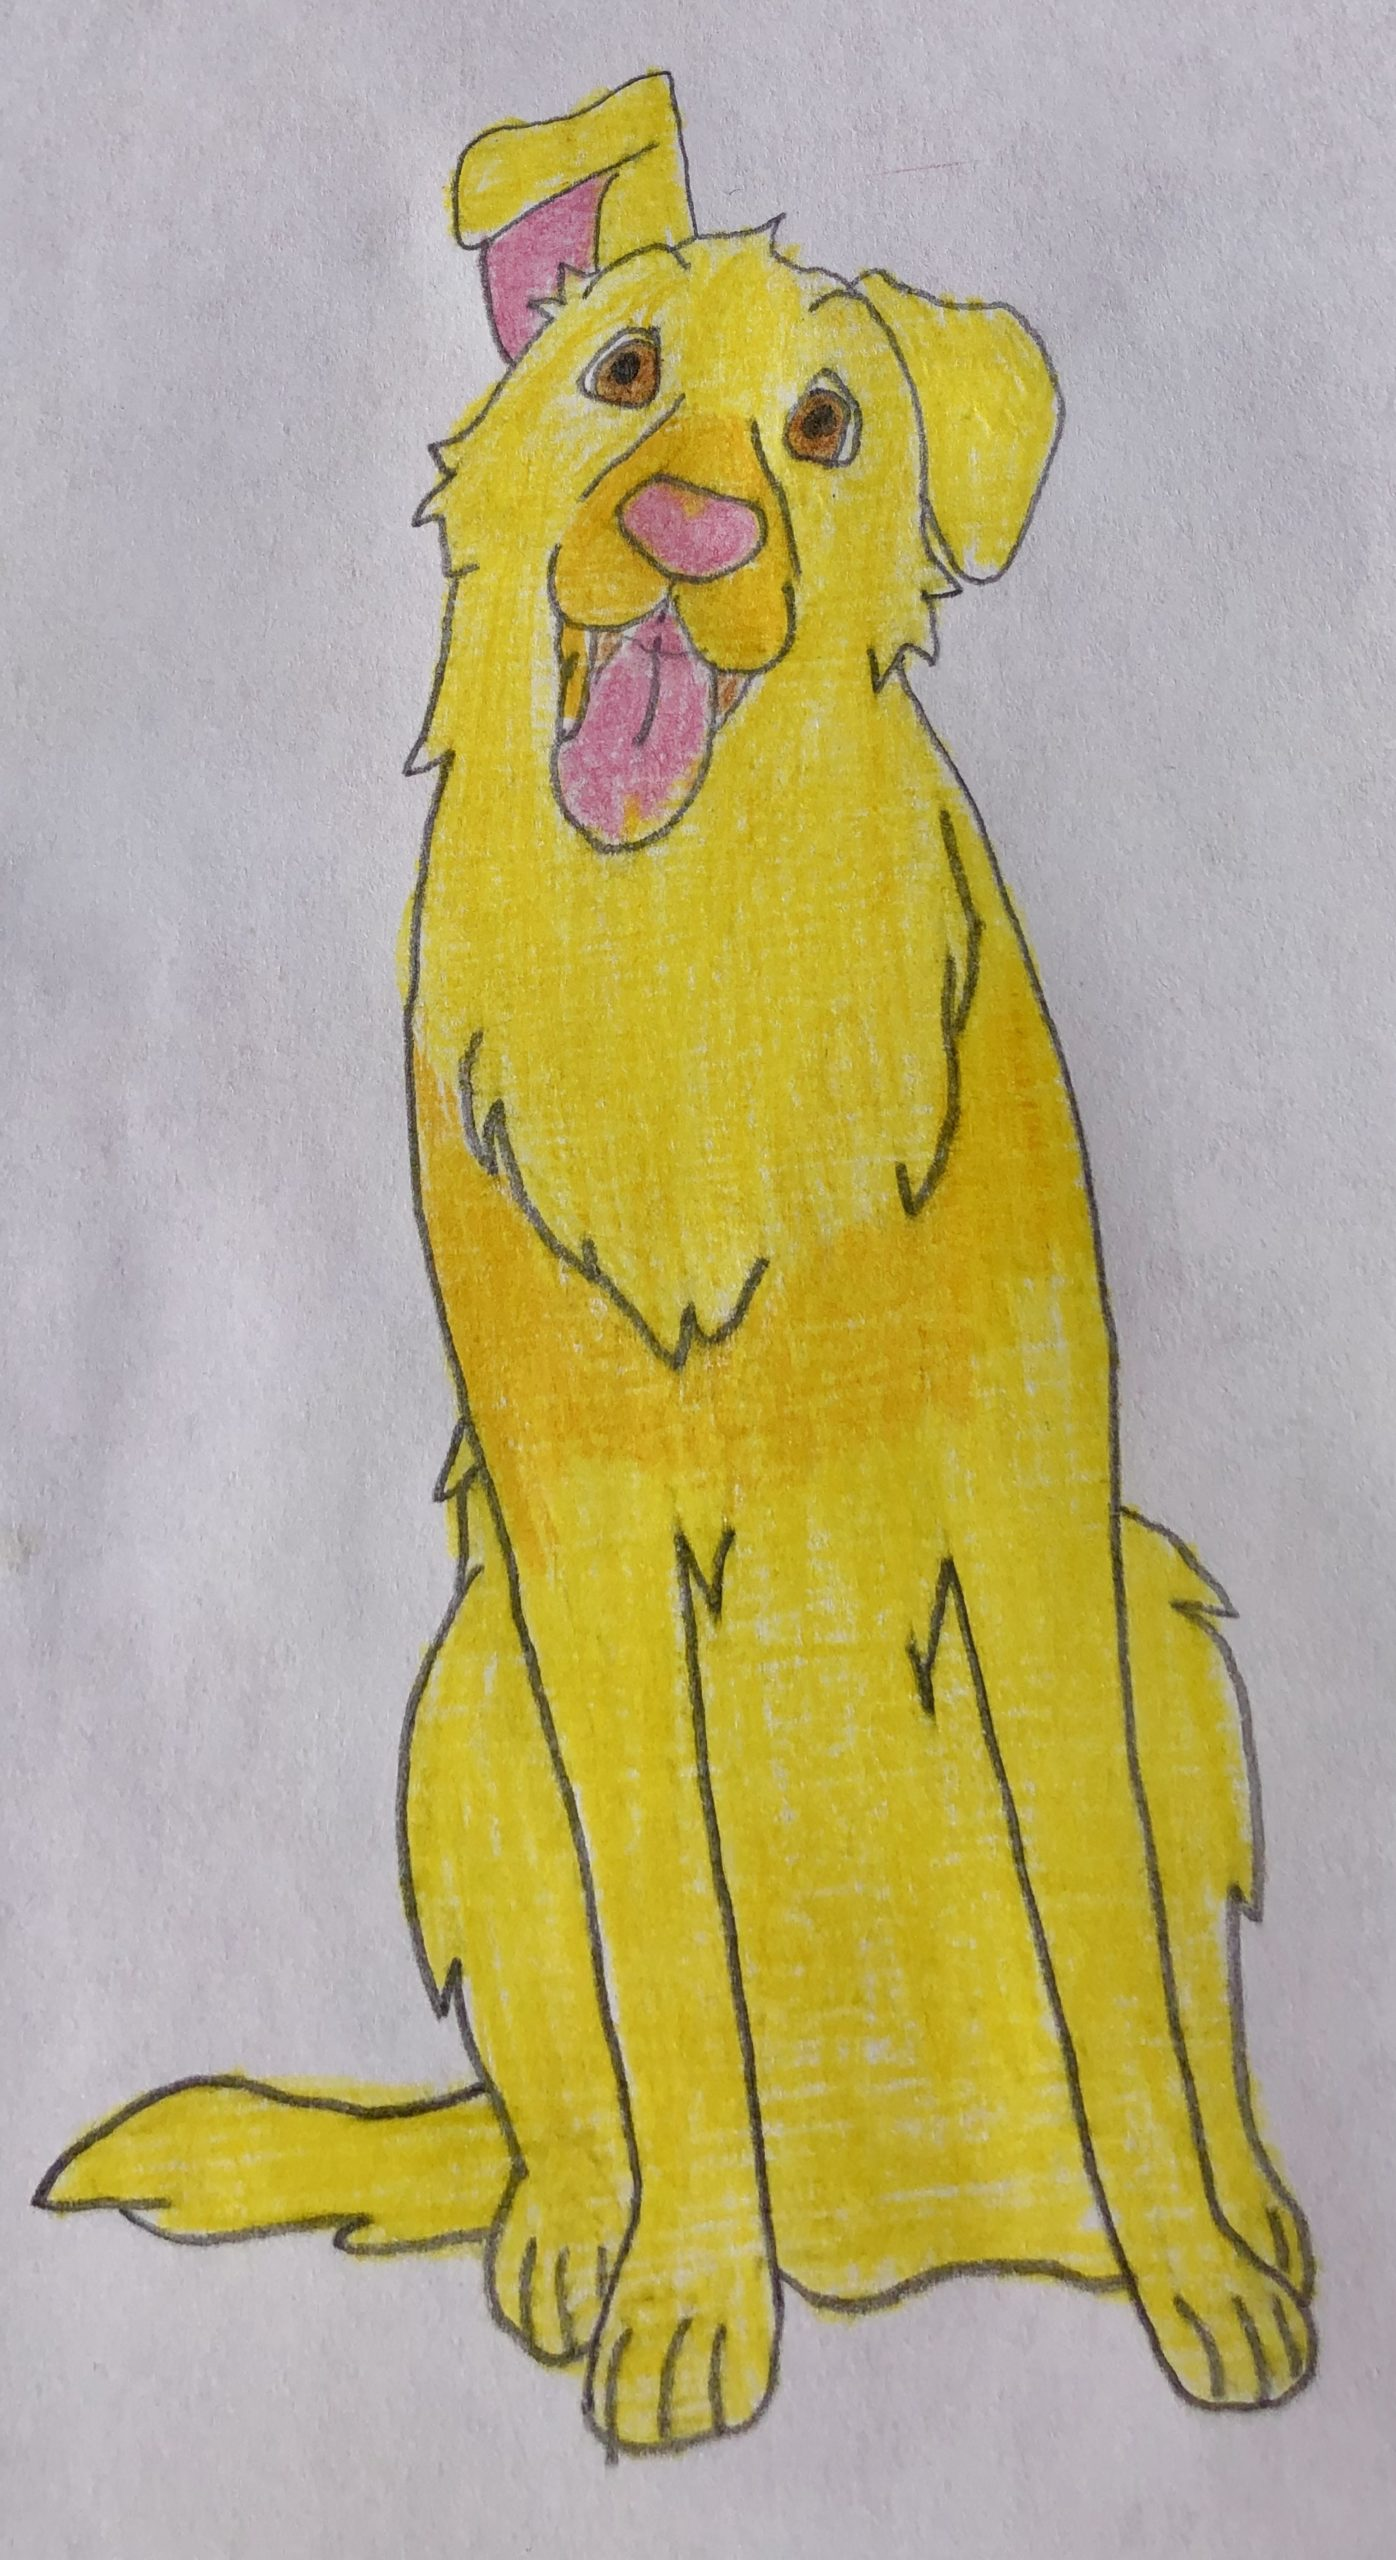 Golden retriever dog, Lucy, with one ear cocked up from the mystery story for kids, The Case of the Missing Puppy.